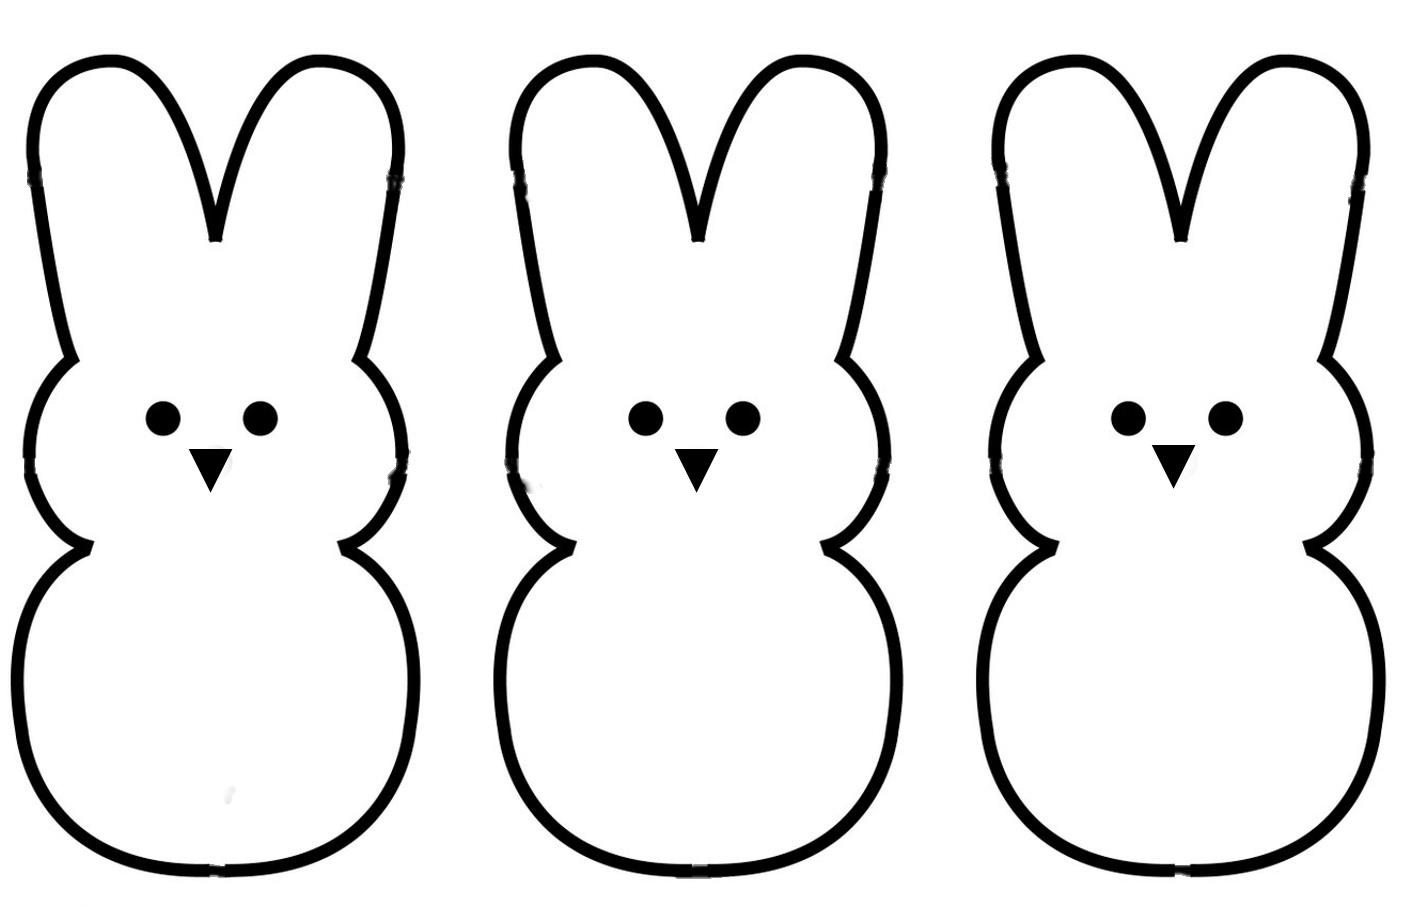 peeps silhouette at getdrawings com free for personal use peeps rh getdrawings com easter peeps clipart peeps clipart black and white